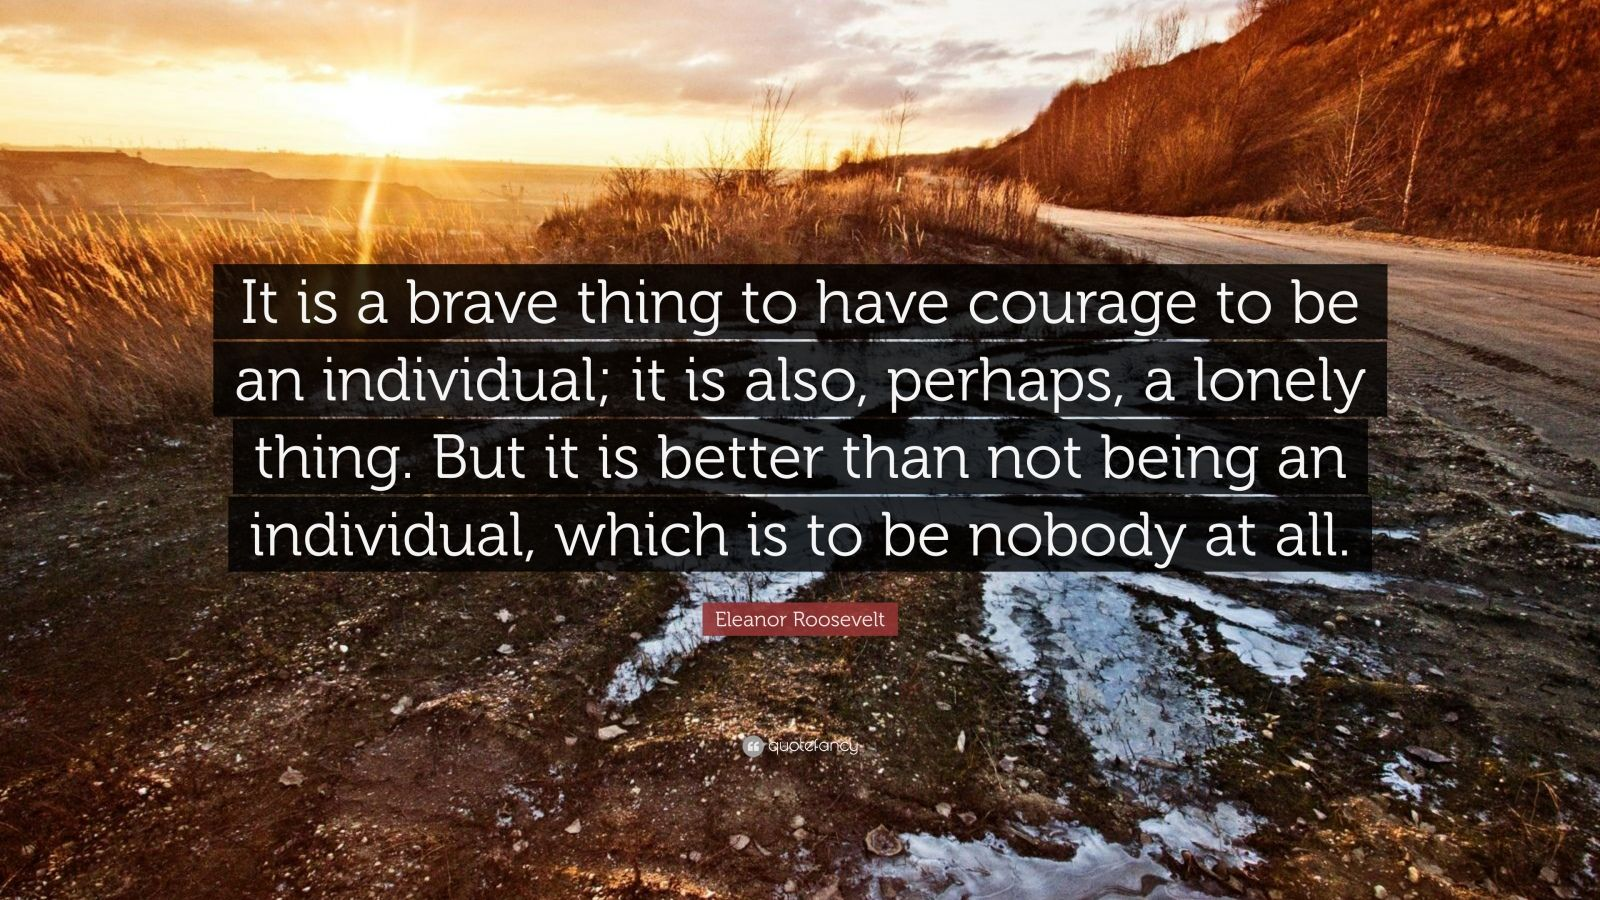 "Eleanor Roosevelt Quote: ""It is a brave thing to have courage to be an individual; it is also, perhaps, a lonely thing. But it is better than not being an individual, which is to be nobody at all."""